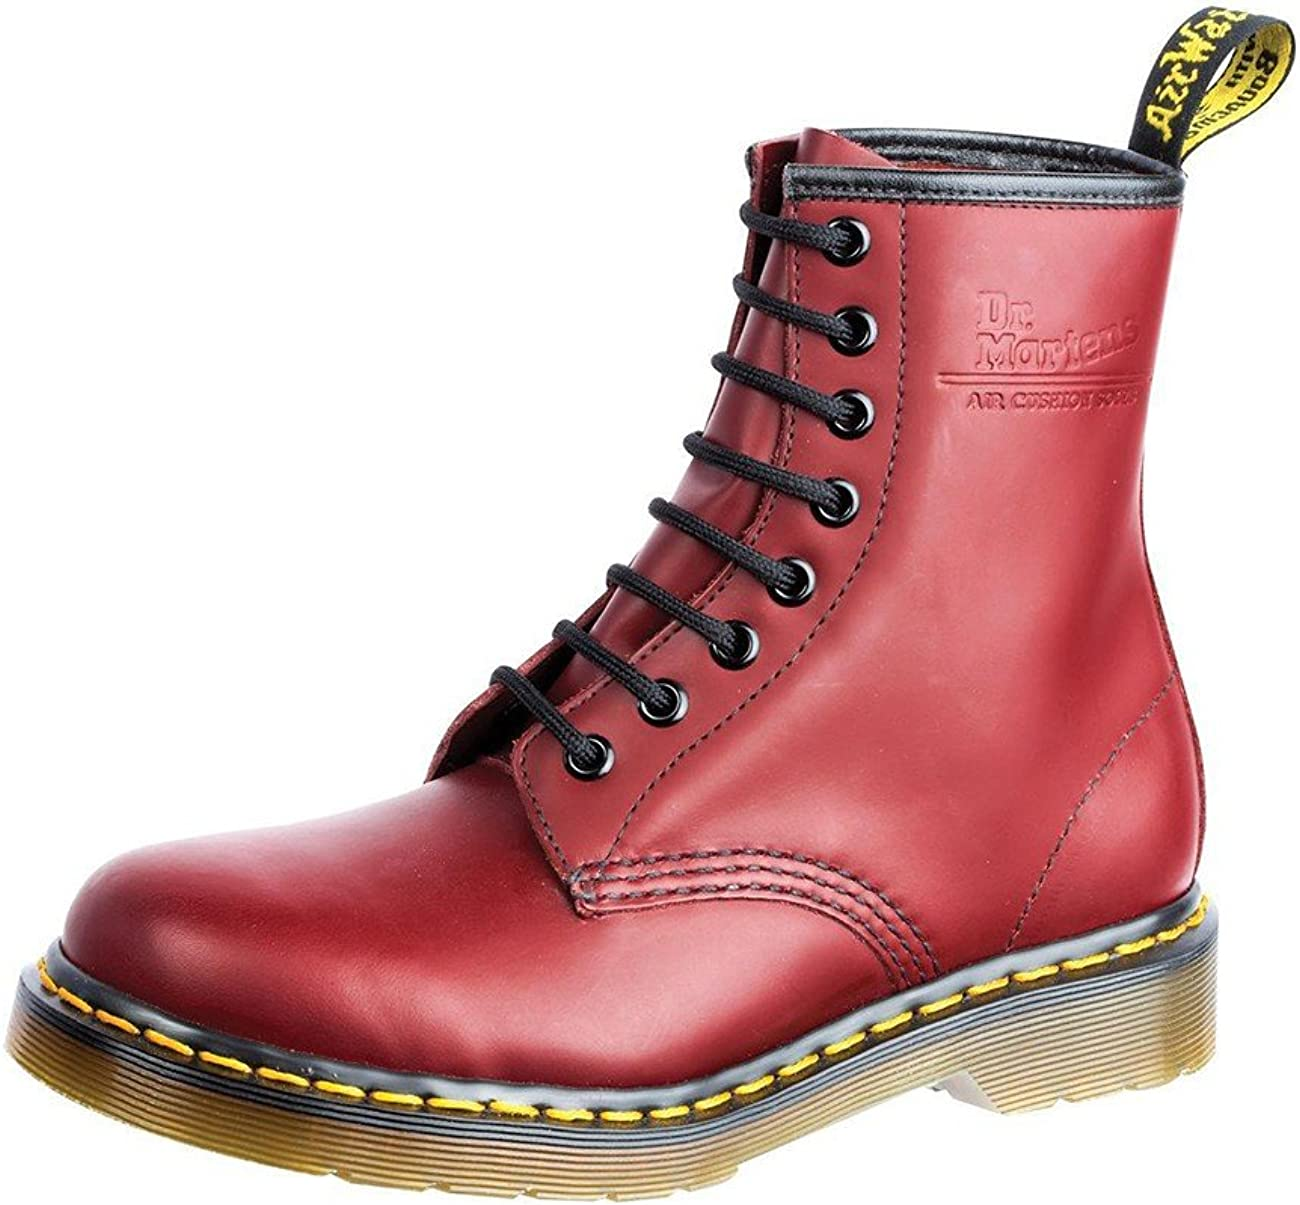 Green Smooth Martens 1460 Original 8-Eye Leather Boot for Men and Women Dr 10 US Women//9 US Men